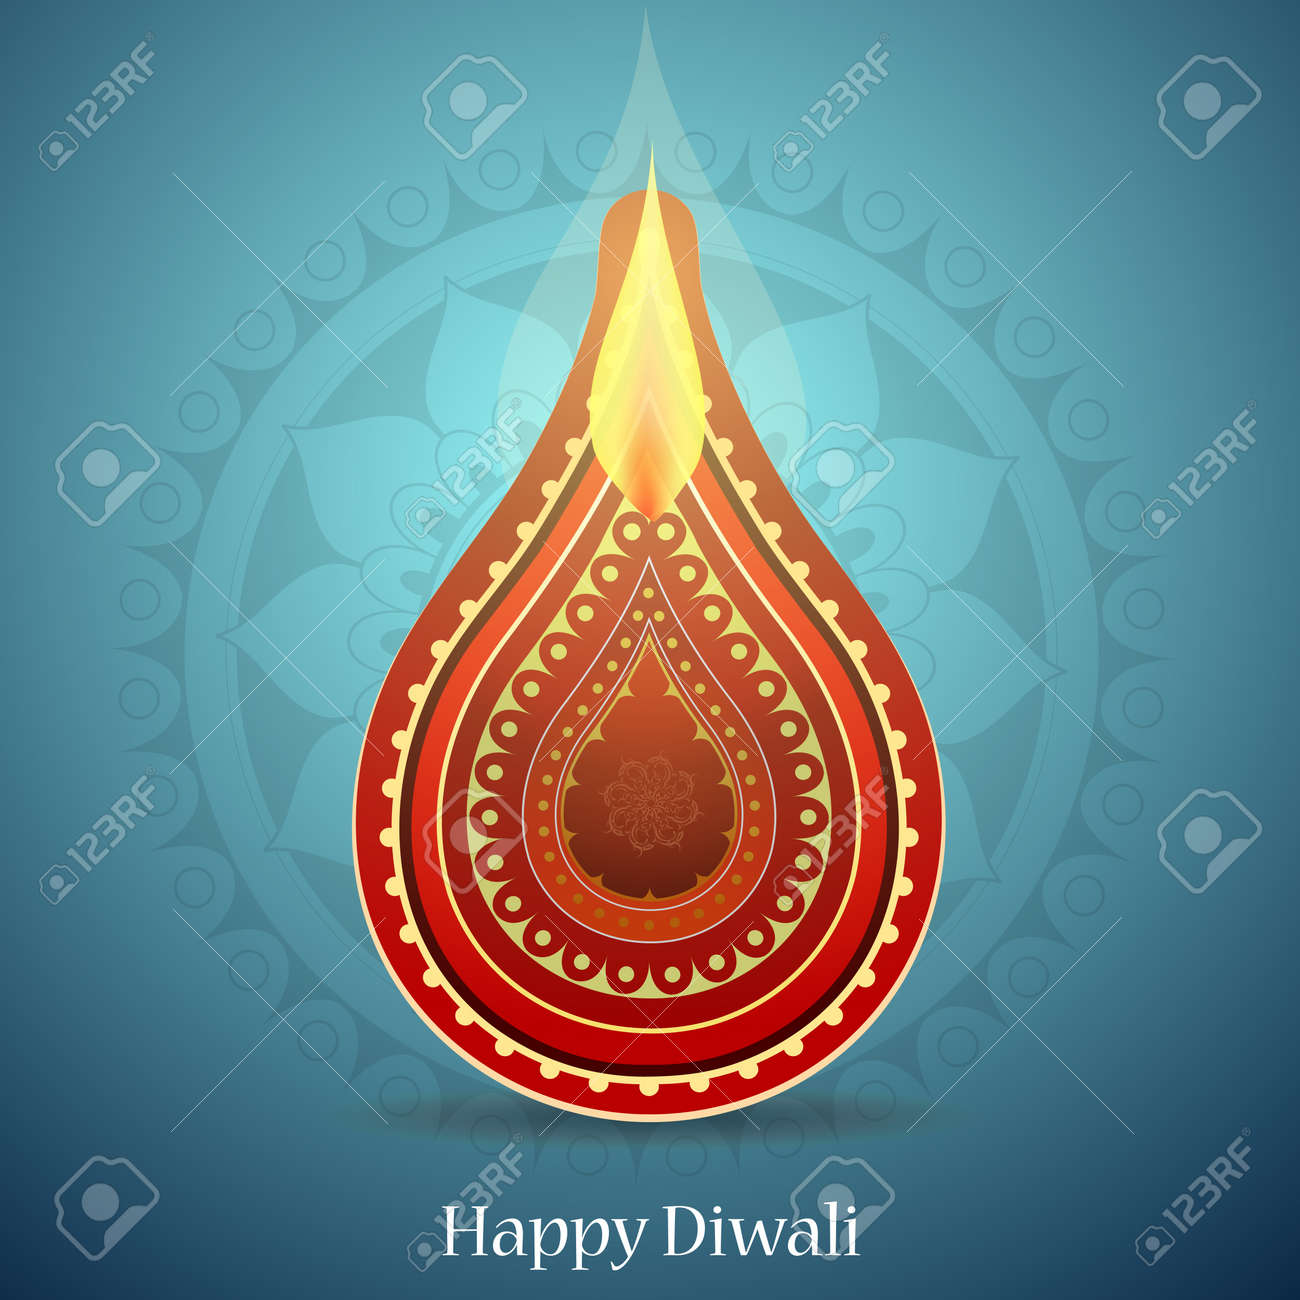 Indian Festival Diwali Greeting Card Design With Ethnic Ornament